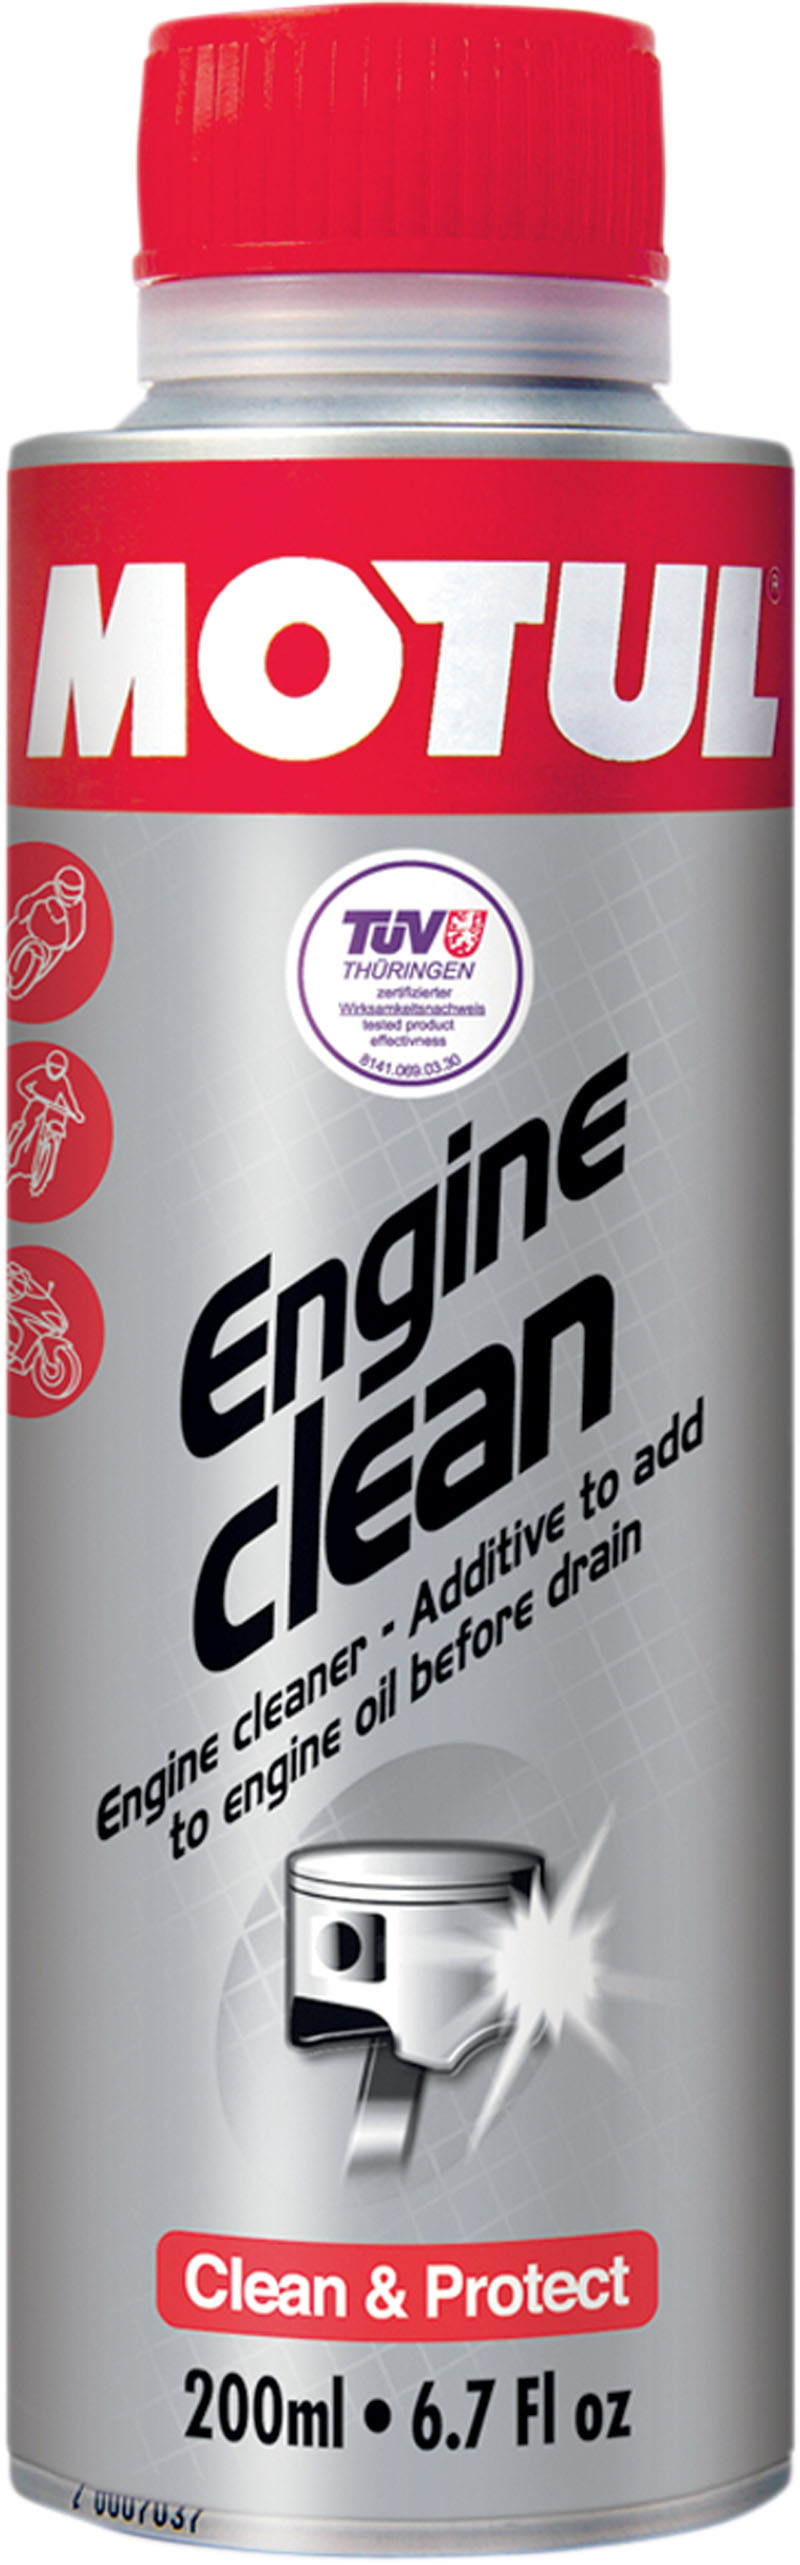 MOTUL ENGINE CLEAN MOTO 6 7 OZ (#102177) (3704-0006) by